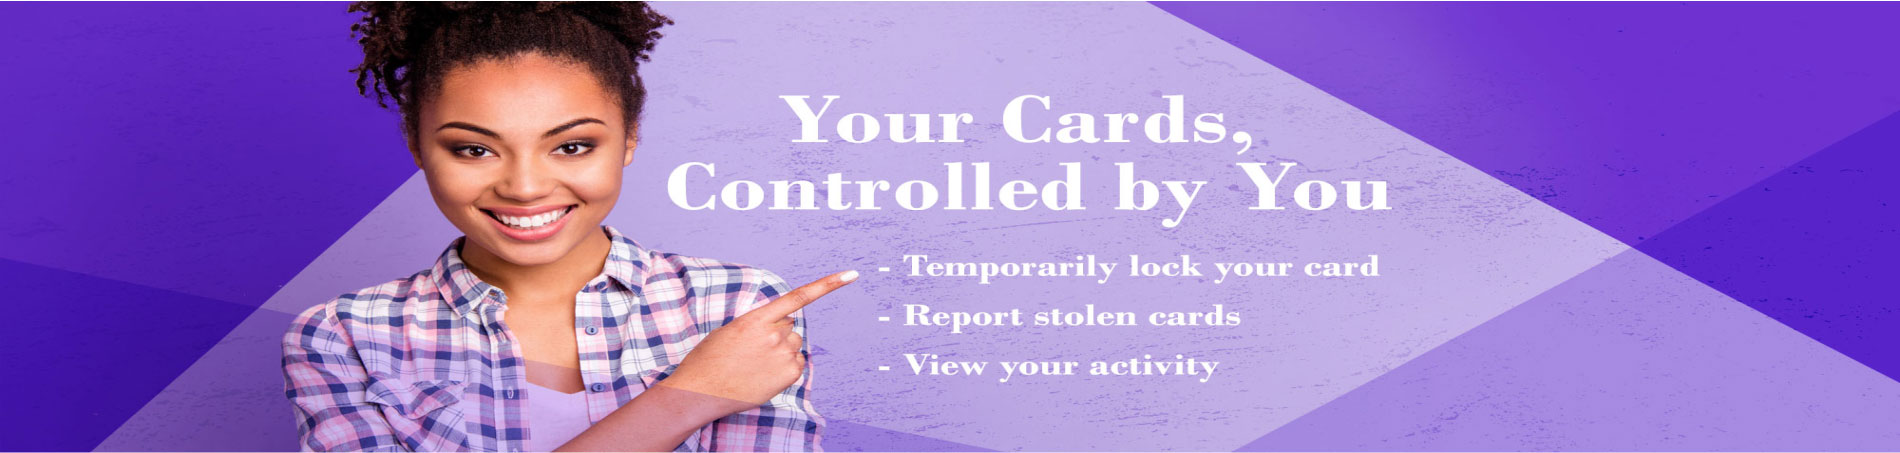 Your Cards Controlled By You including temporary locking your card, reporting stolen cards and viewing activty